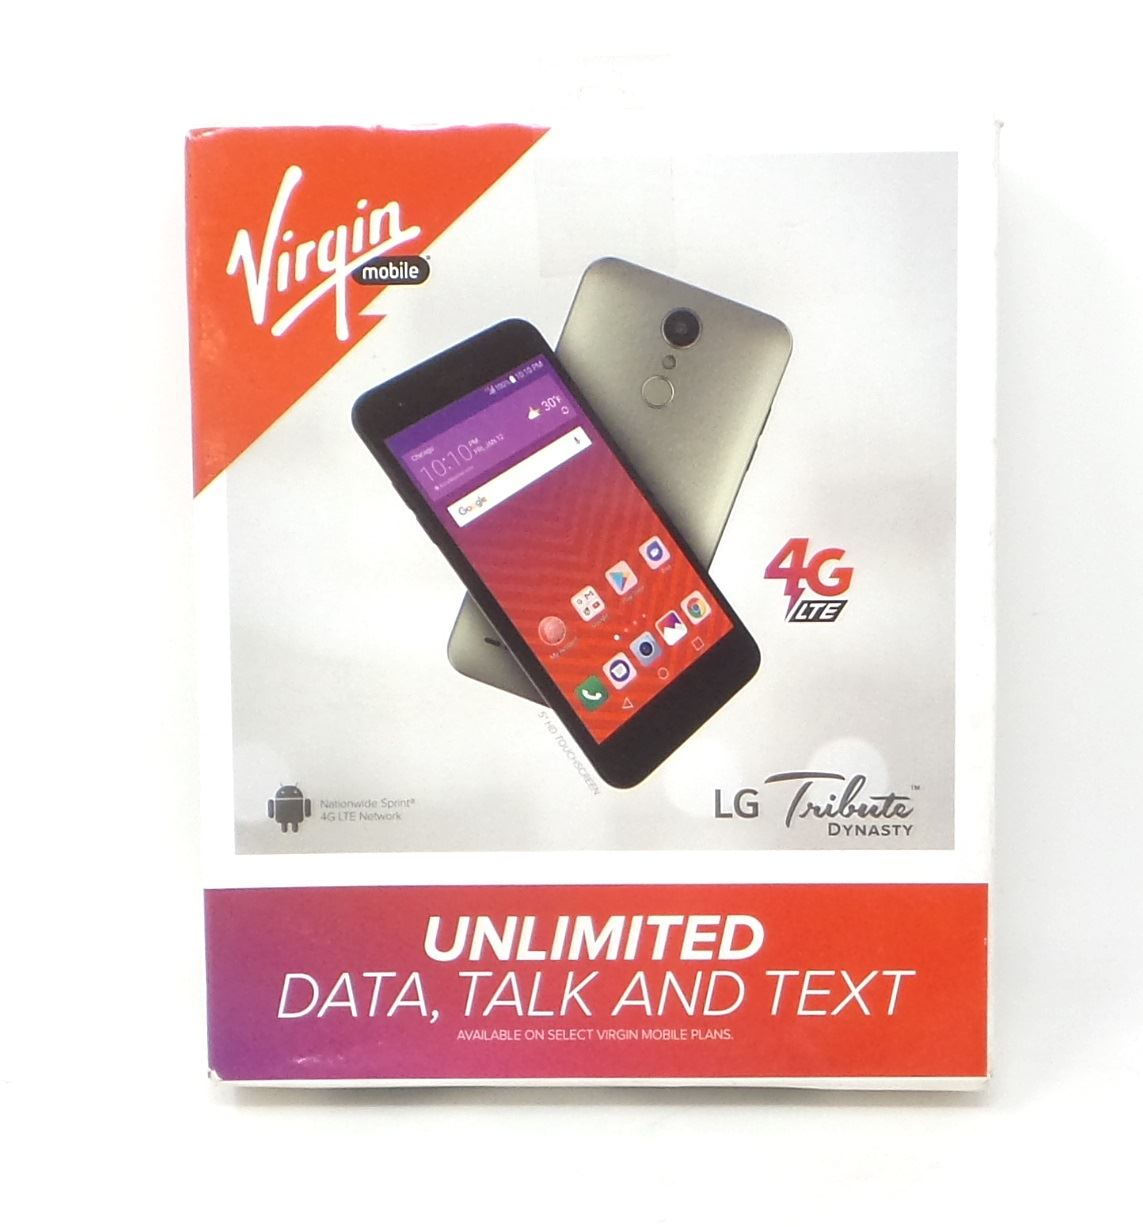 Details about Virgin Mobile LG Tribute Dynasy 4G LTE Smartphone Champagne  LGSP200AVB New